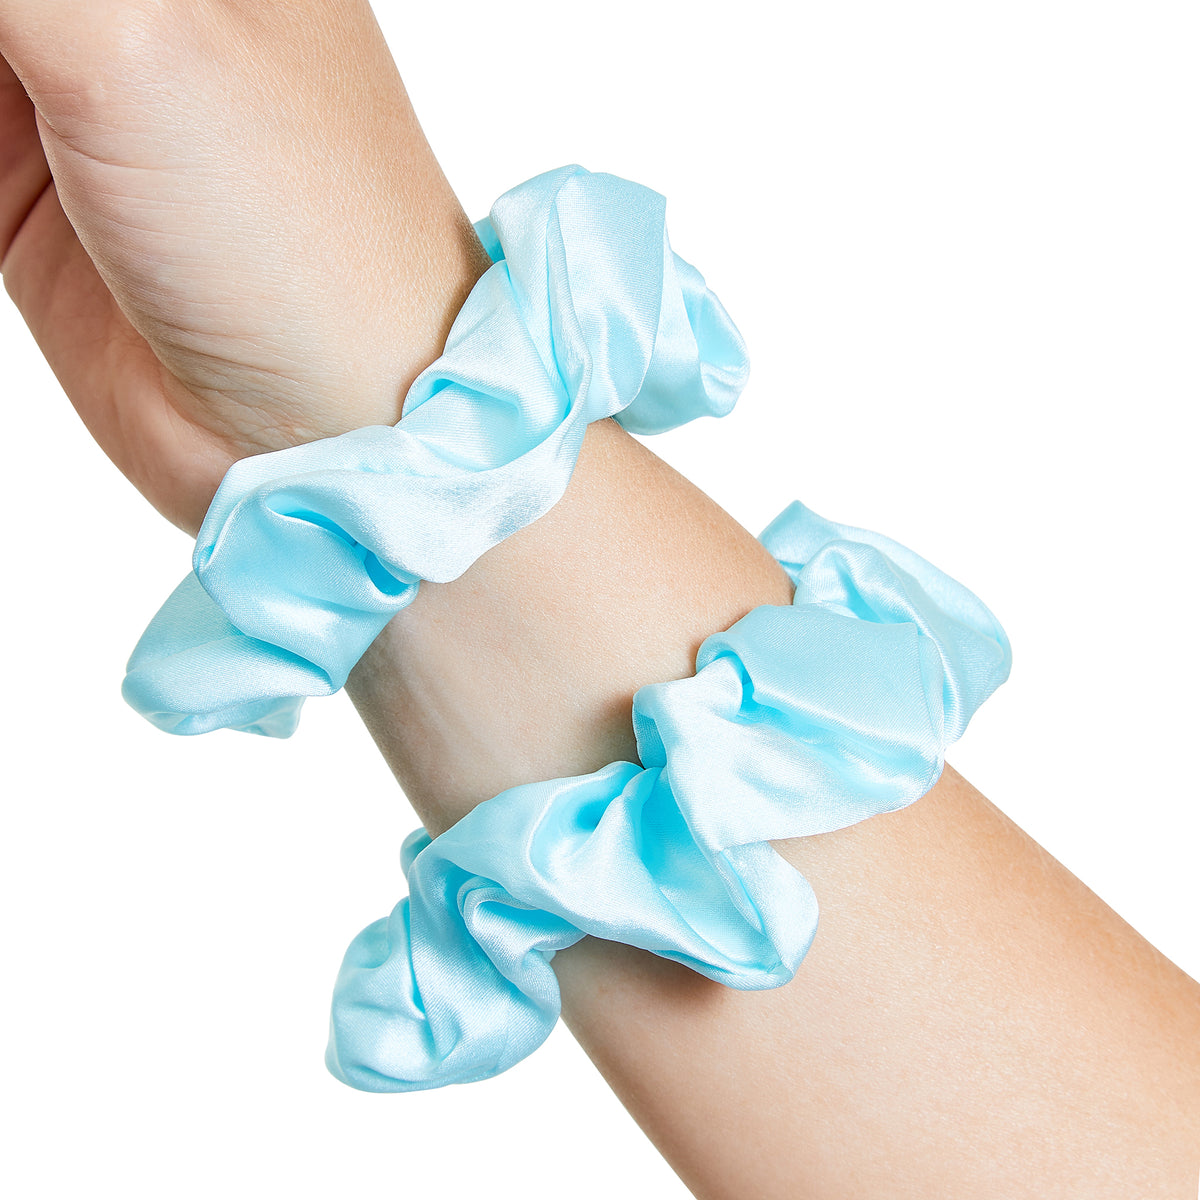 Only Curls Silk Scrunchies Aqua - Only Curls